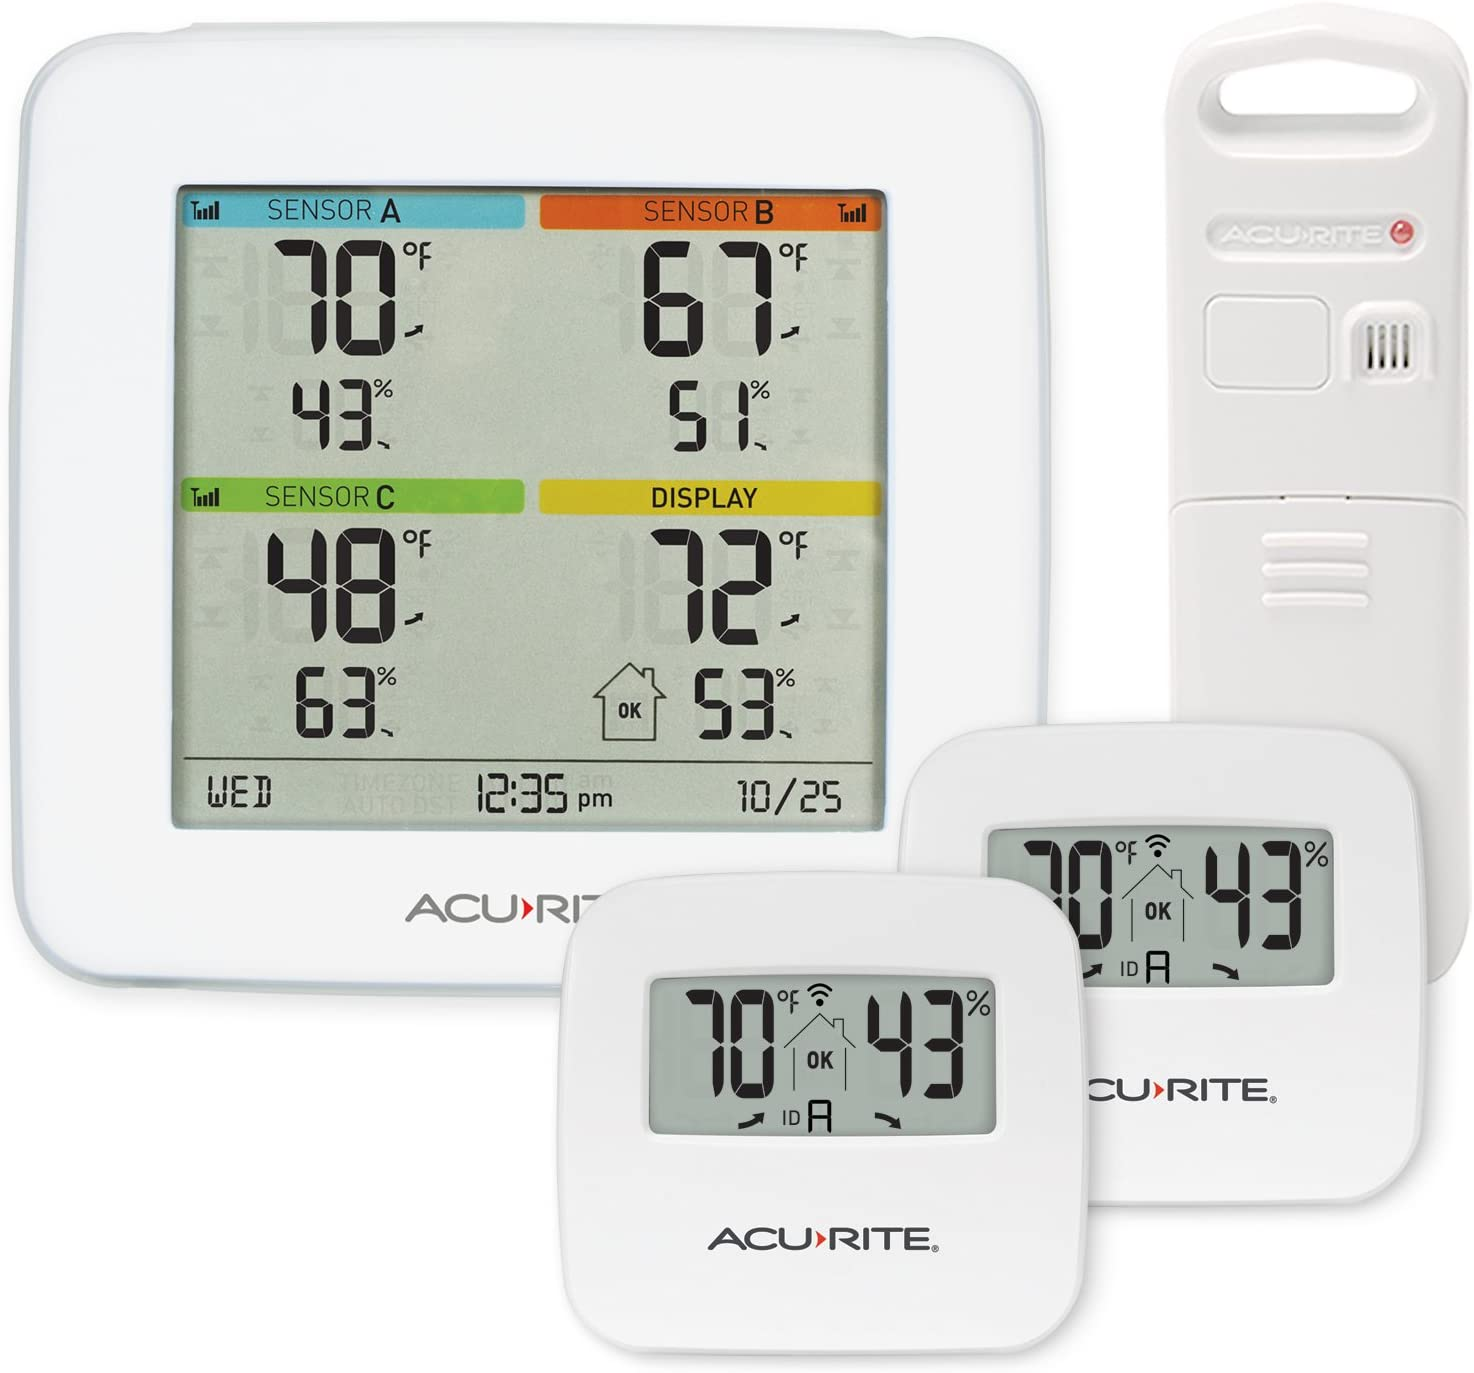 San Jose Mall AcuRite 01096M Temperature Humidity Station outlet Outd 3 with Indoor